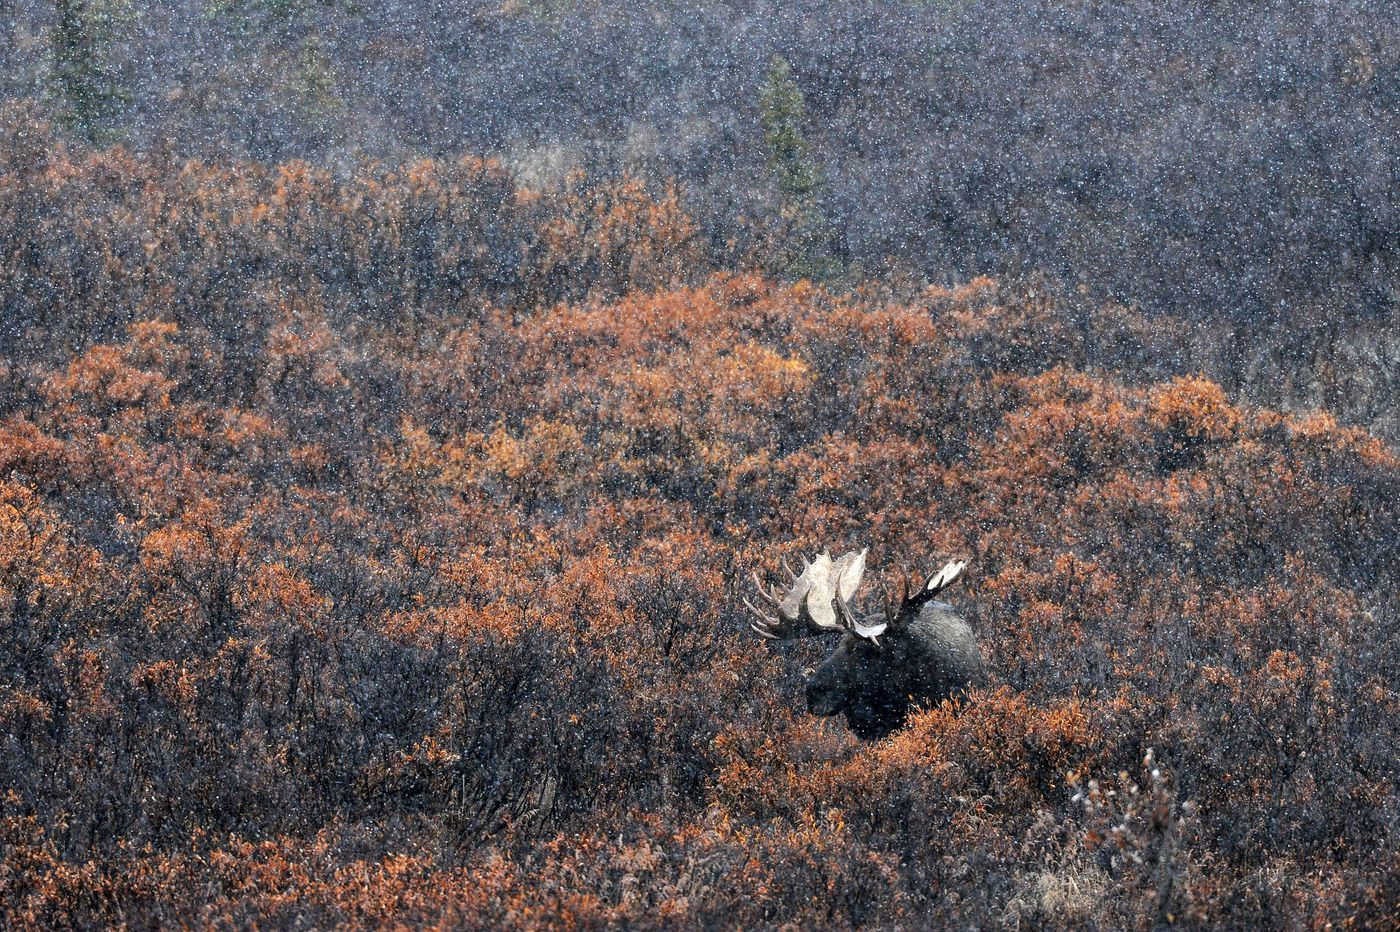 Snow swirls around a bull moose in Denali National Park on Sept. 23, 2014. The bull was with two cows in the park.  (Bob Hallinen / Alaska Dispatch News)